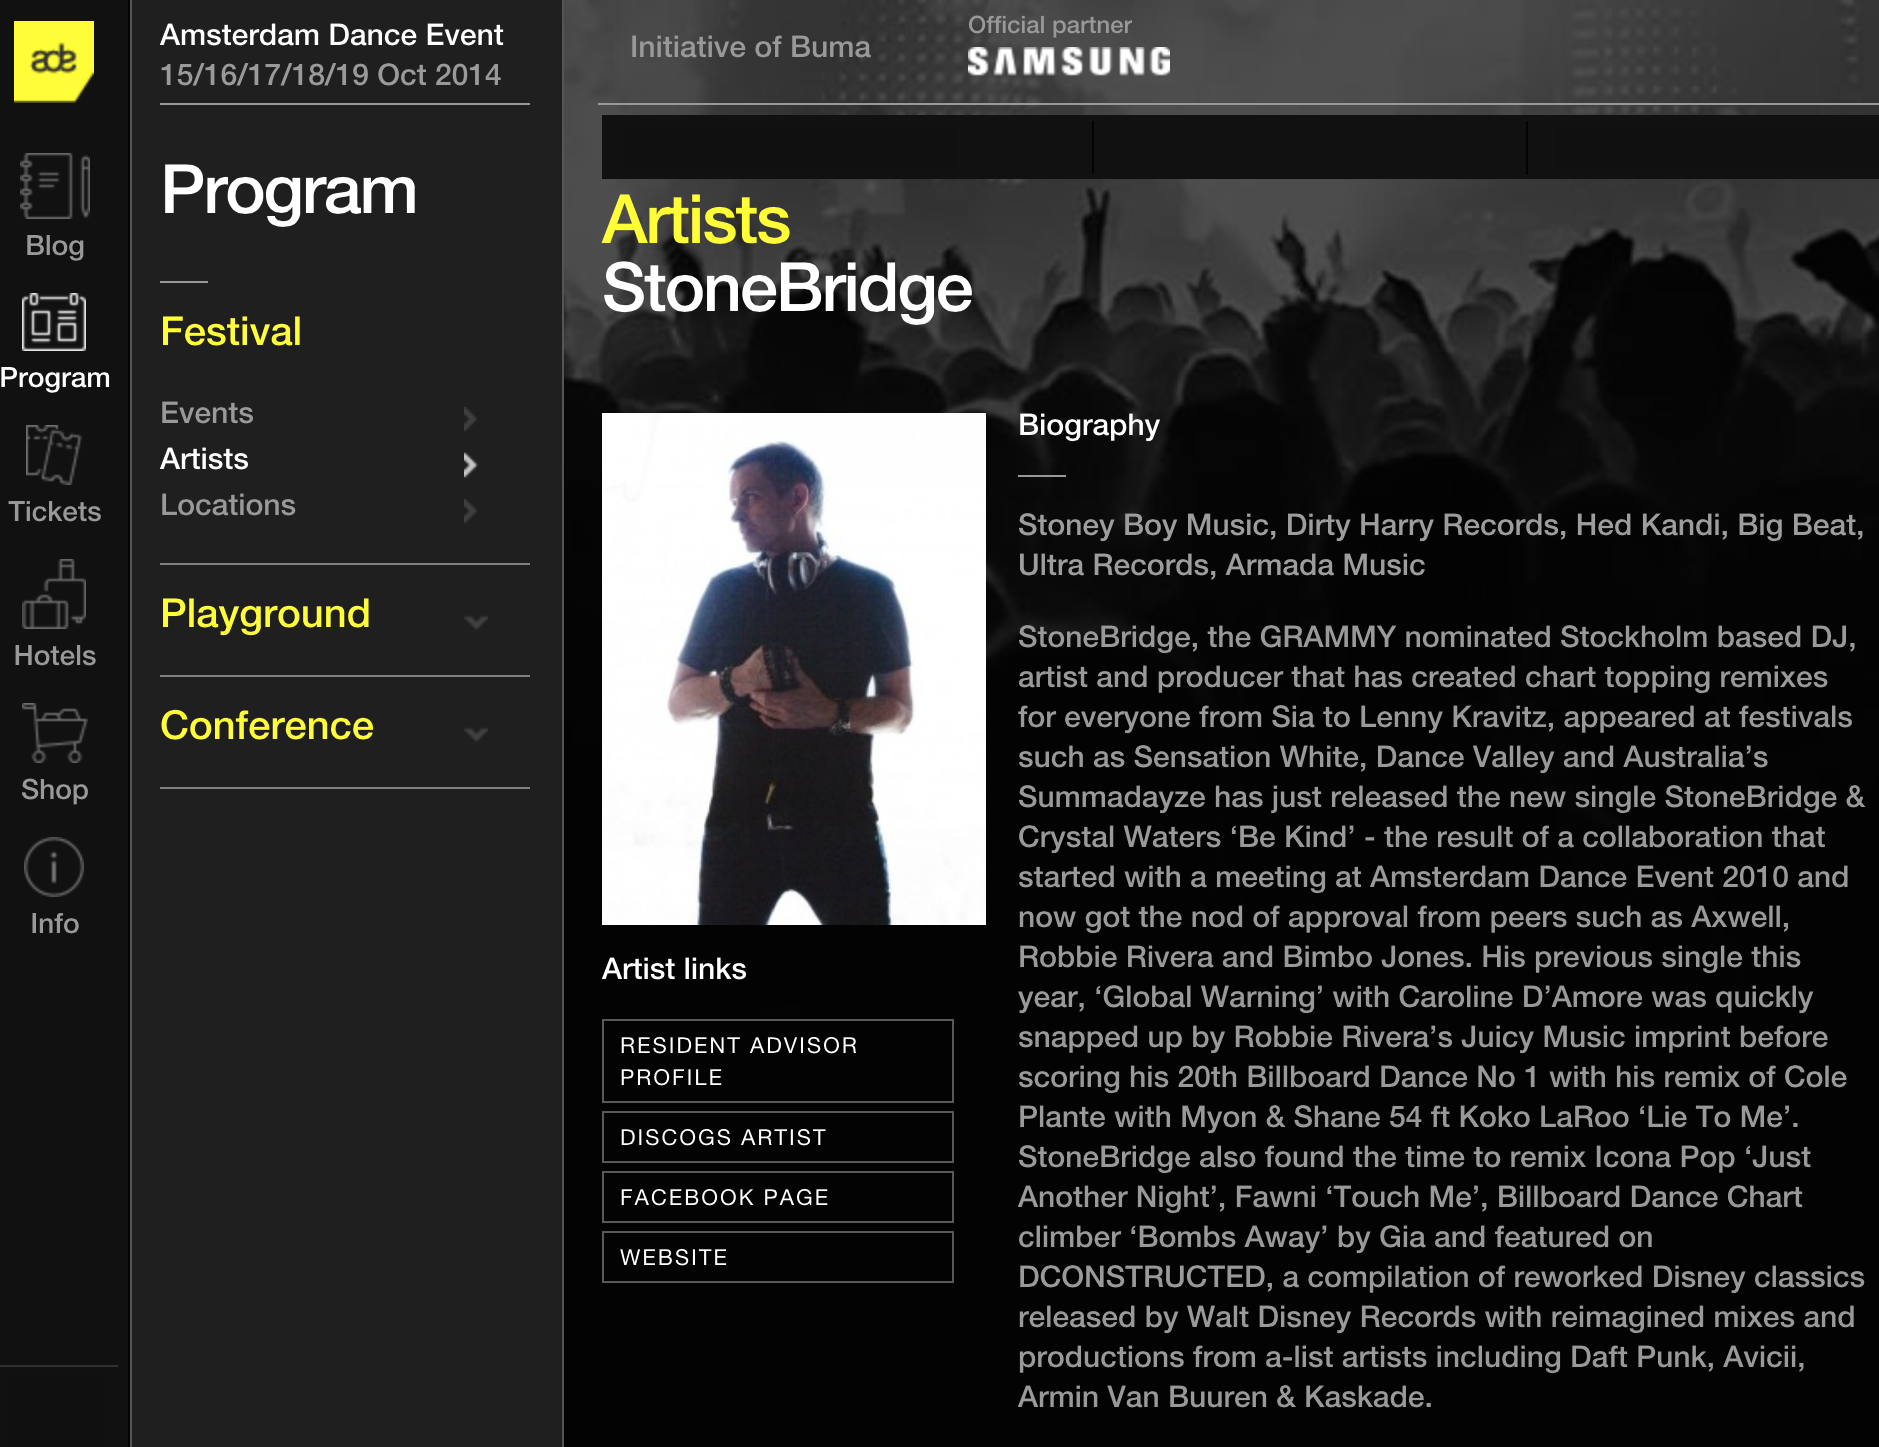 My #ADE2014 artist profile looking swish this year http://www.amsterdam-dance-event.nl/artists/stonebridge/2602/